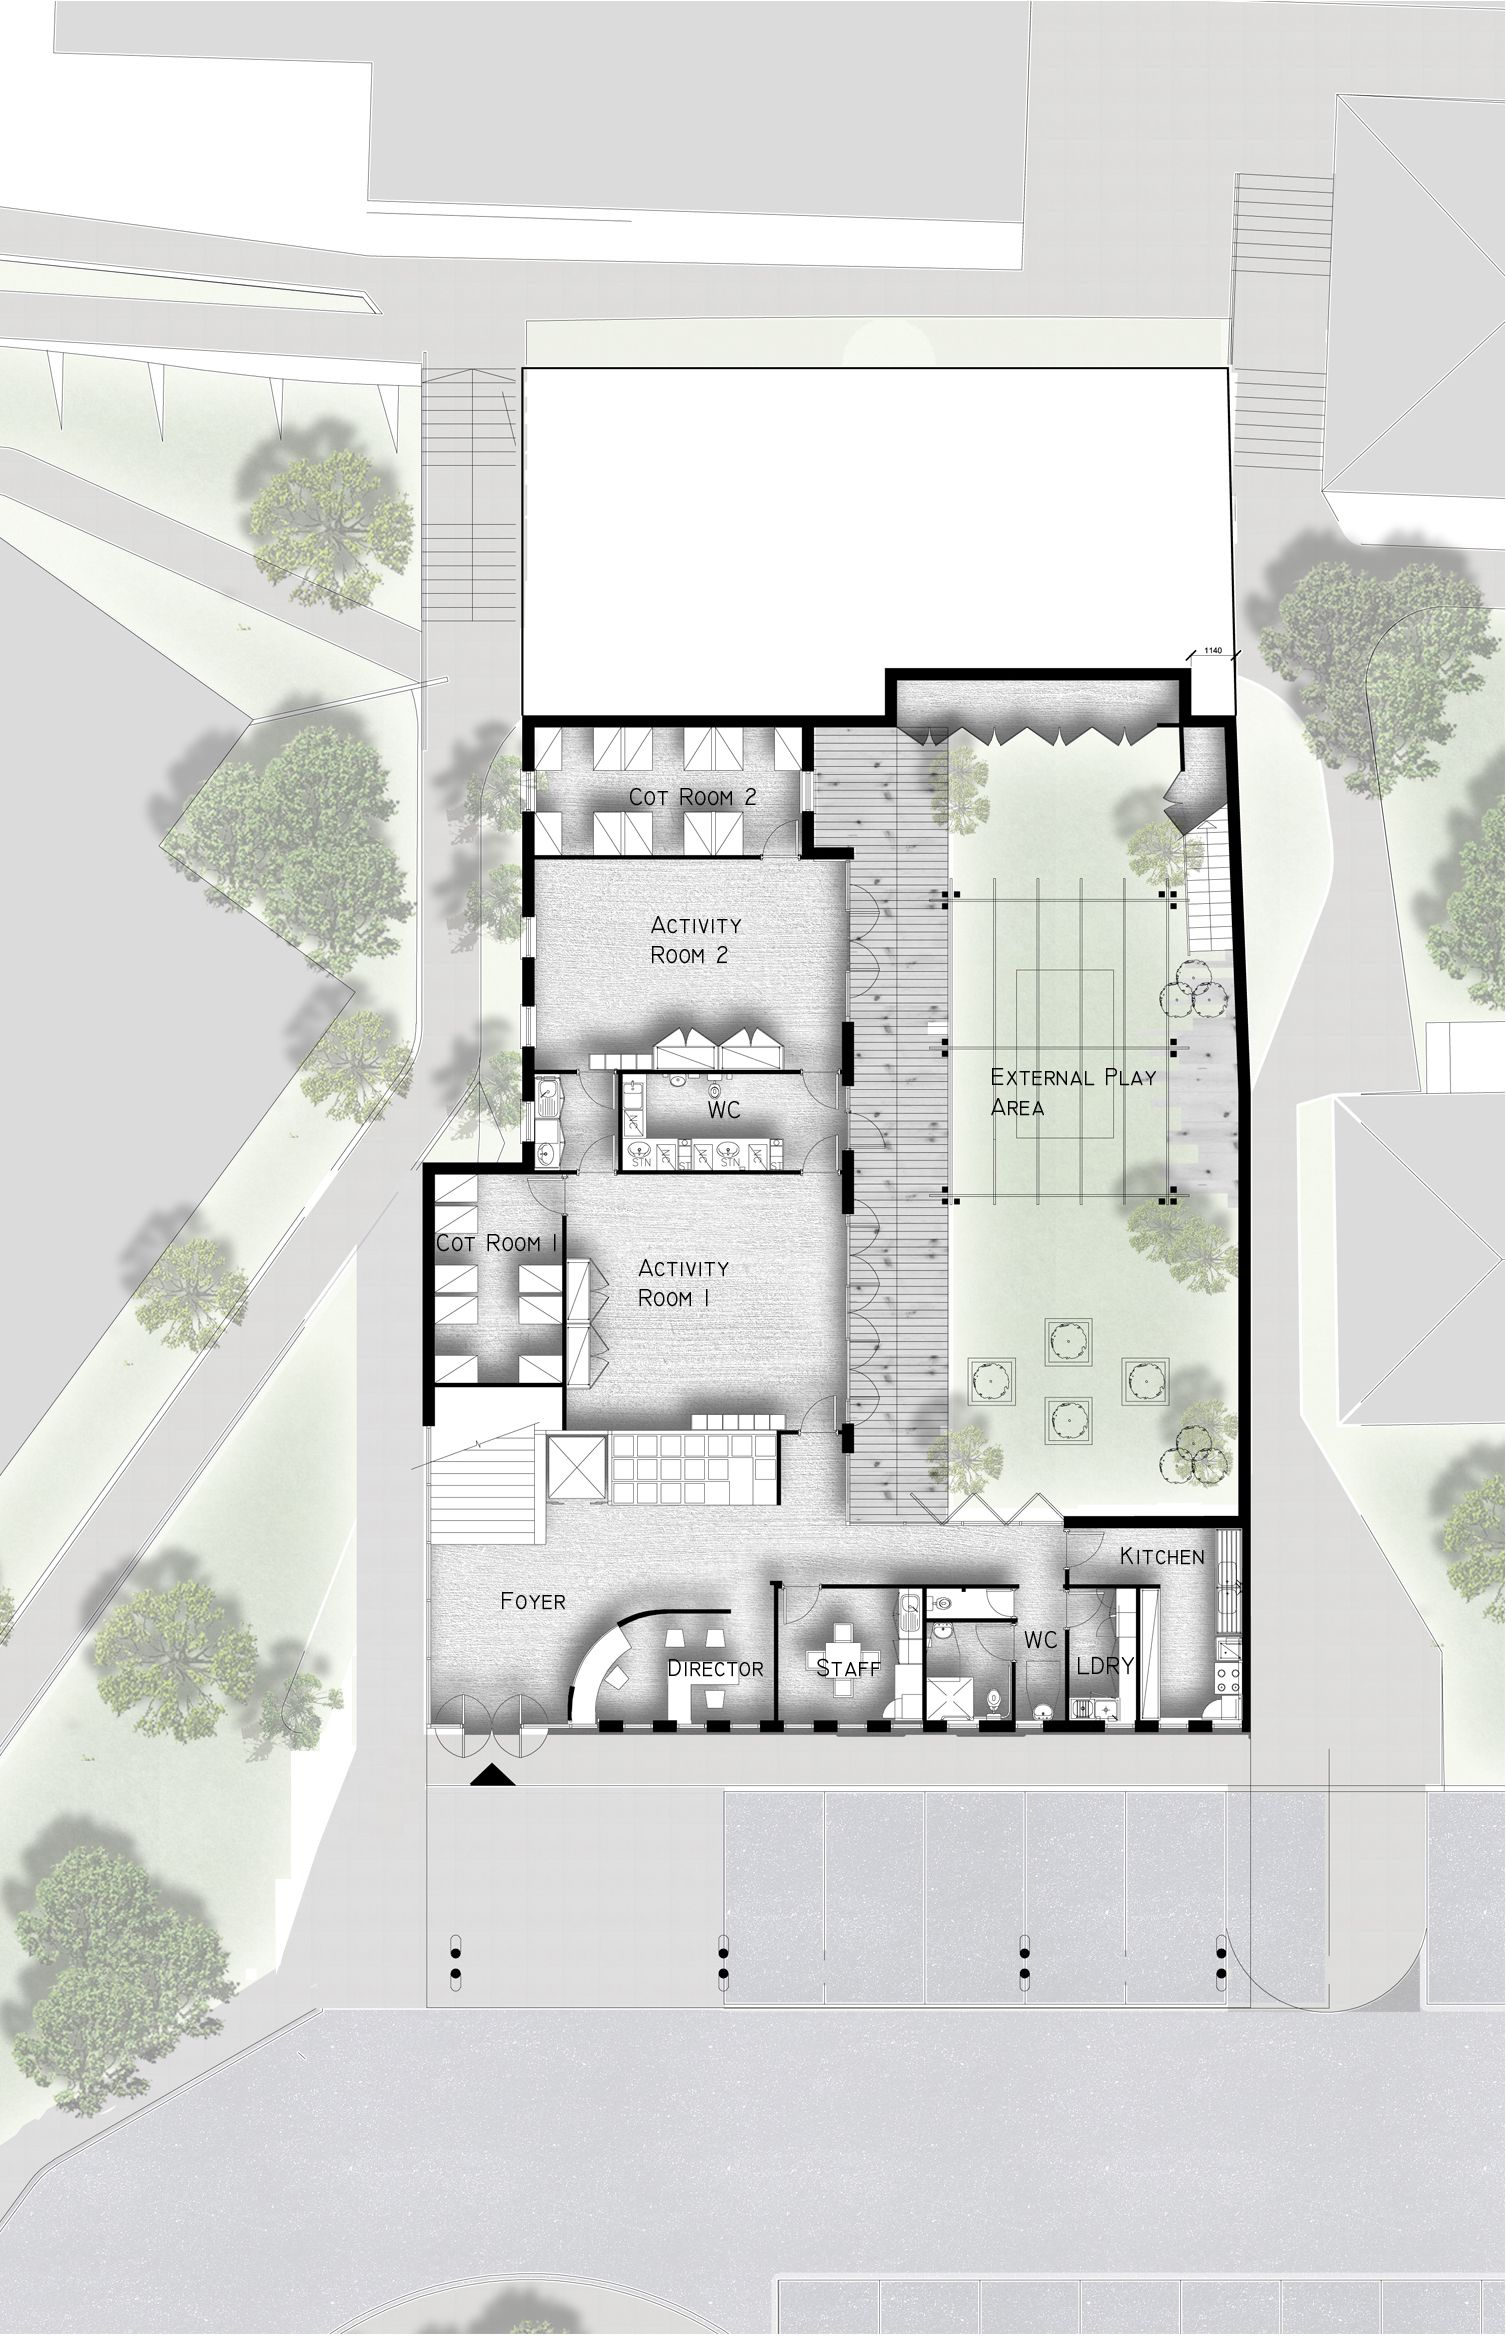 Ground floor concept plan showing layout for Childcare centre and ...